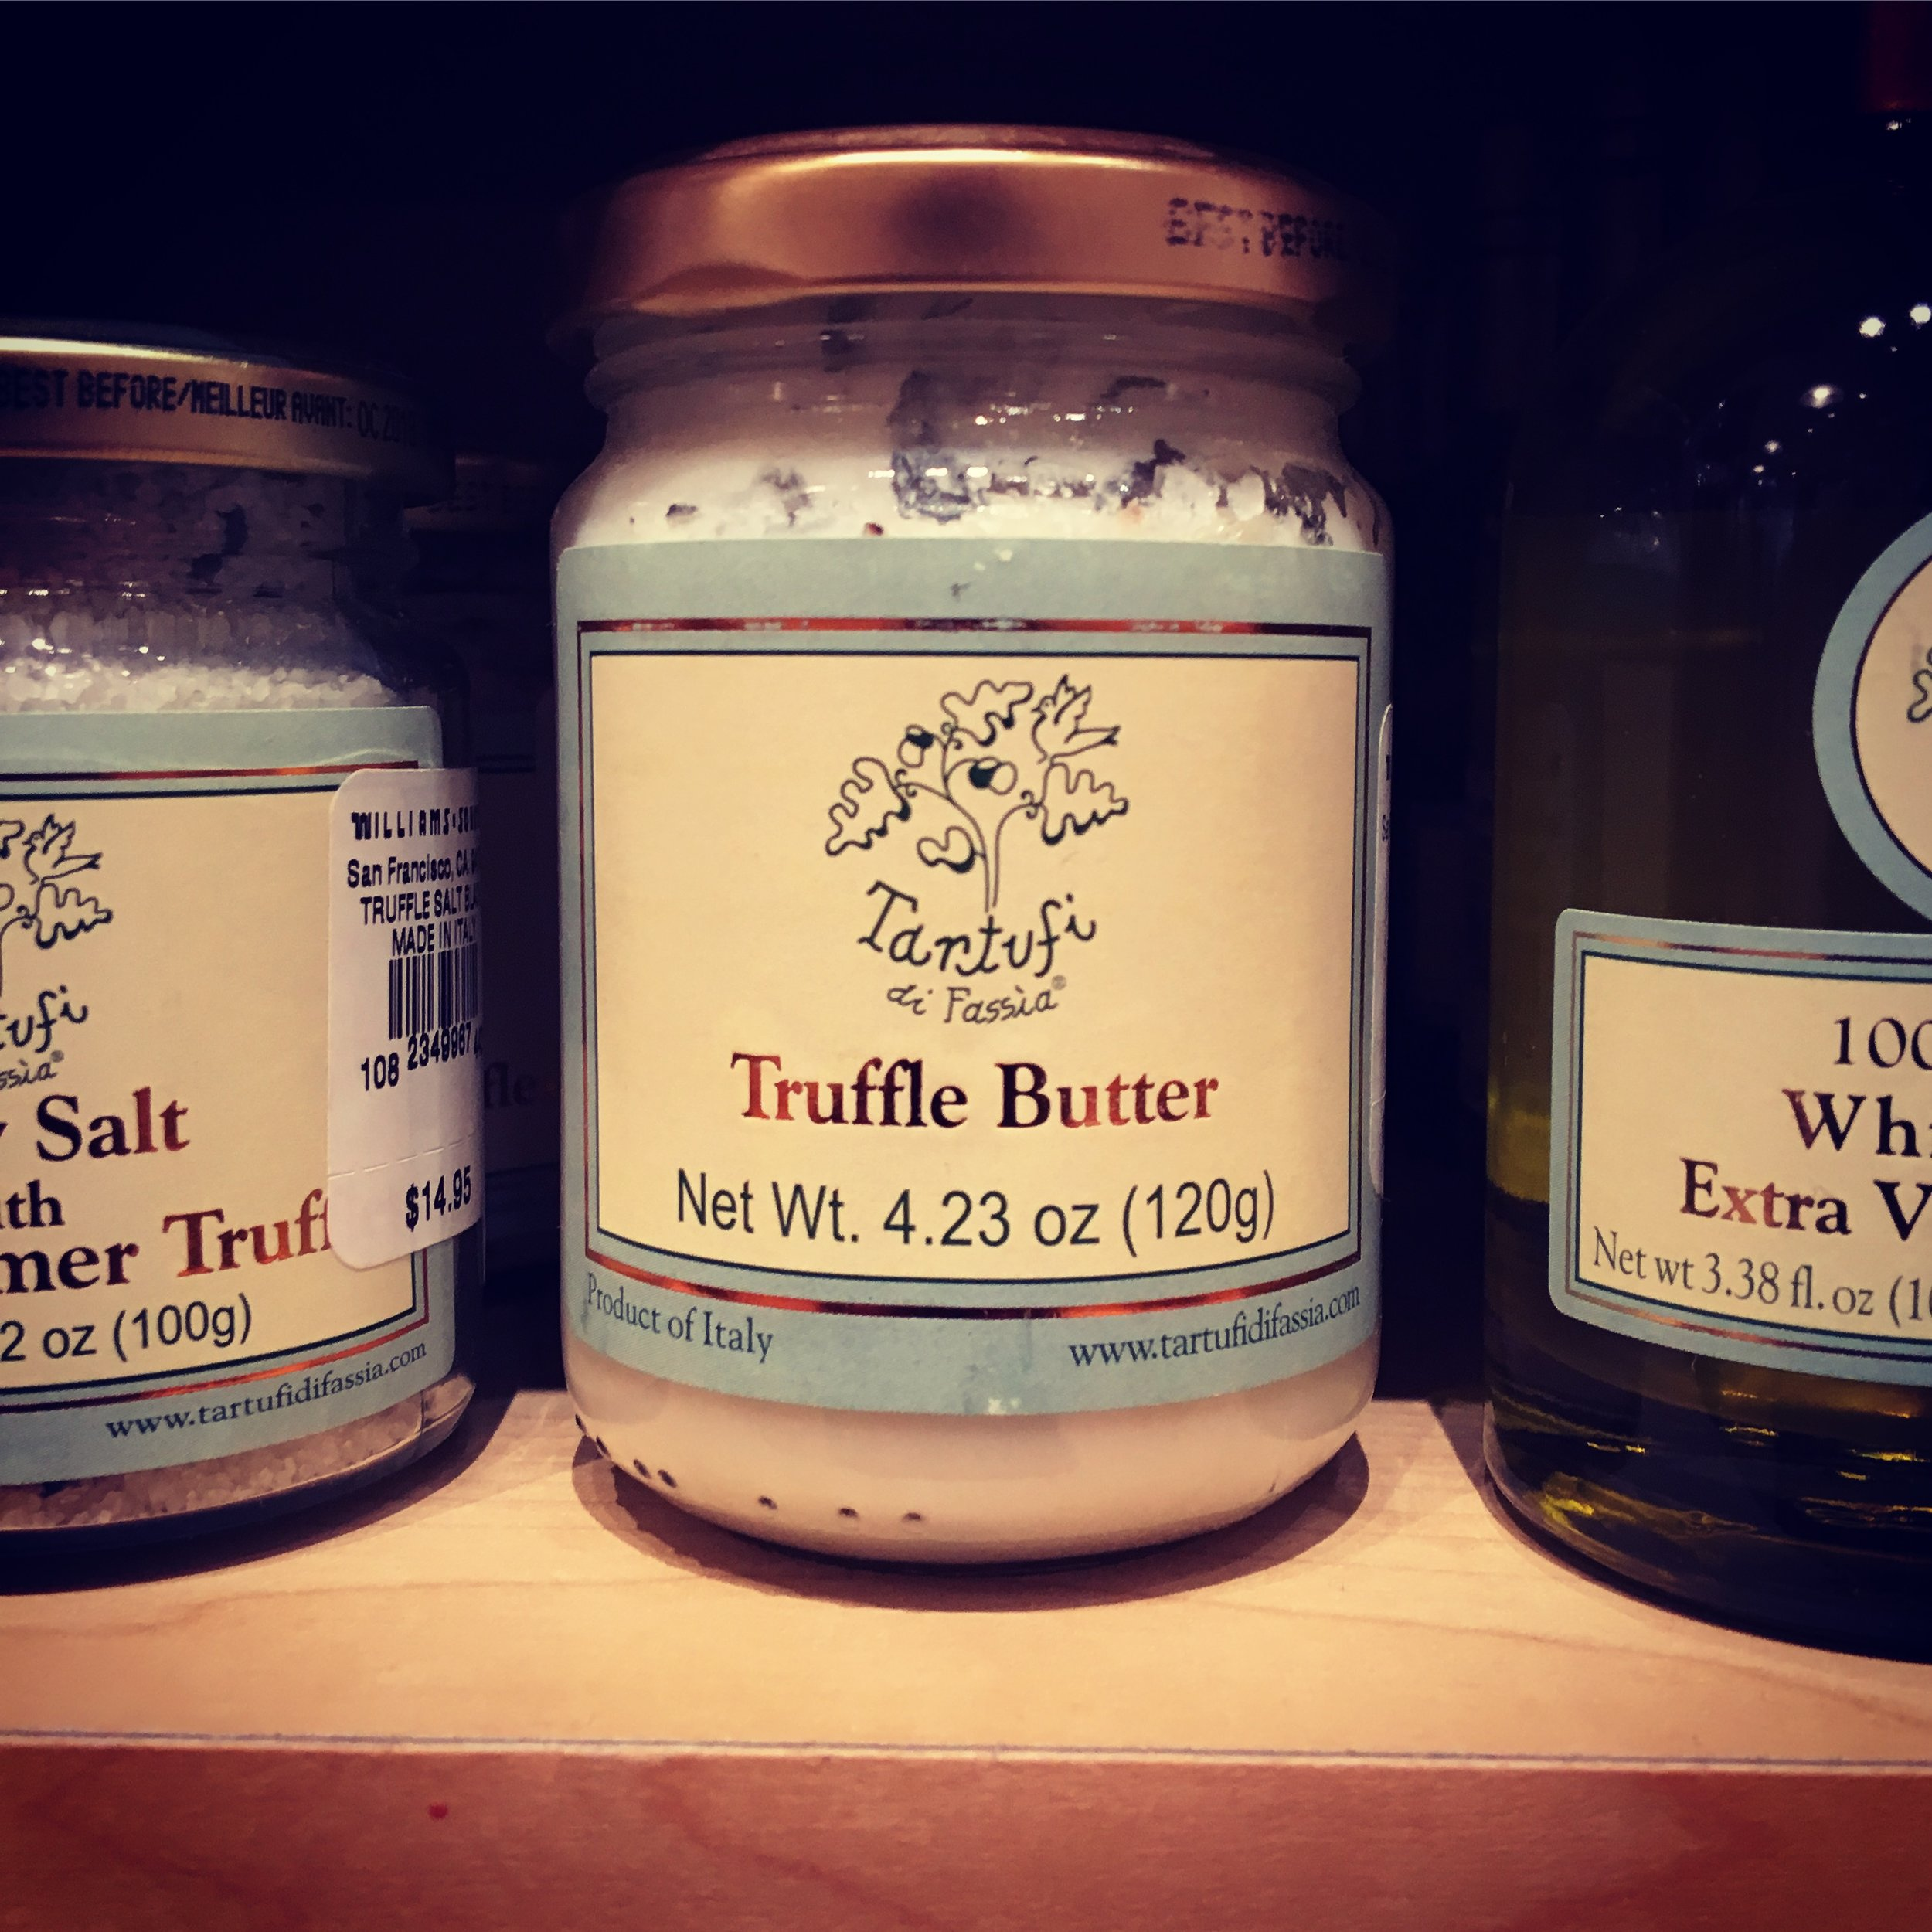 Truffle Butter from Williams-Sonoma Penn Square Mall in OKC